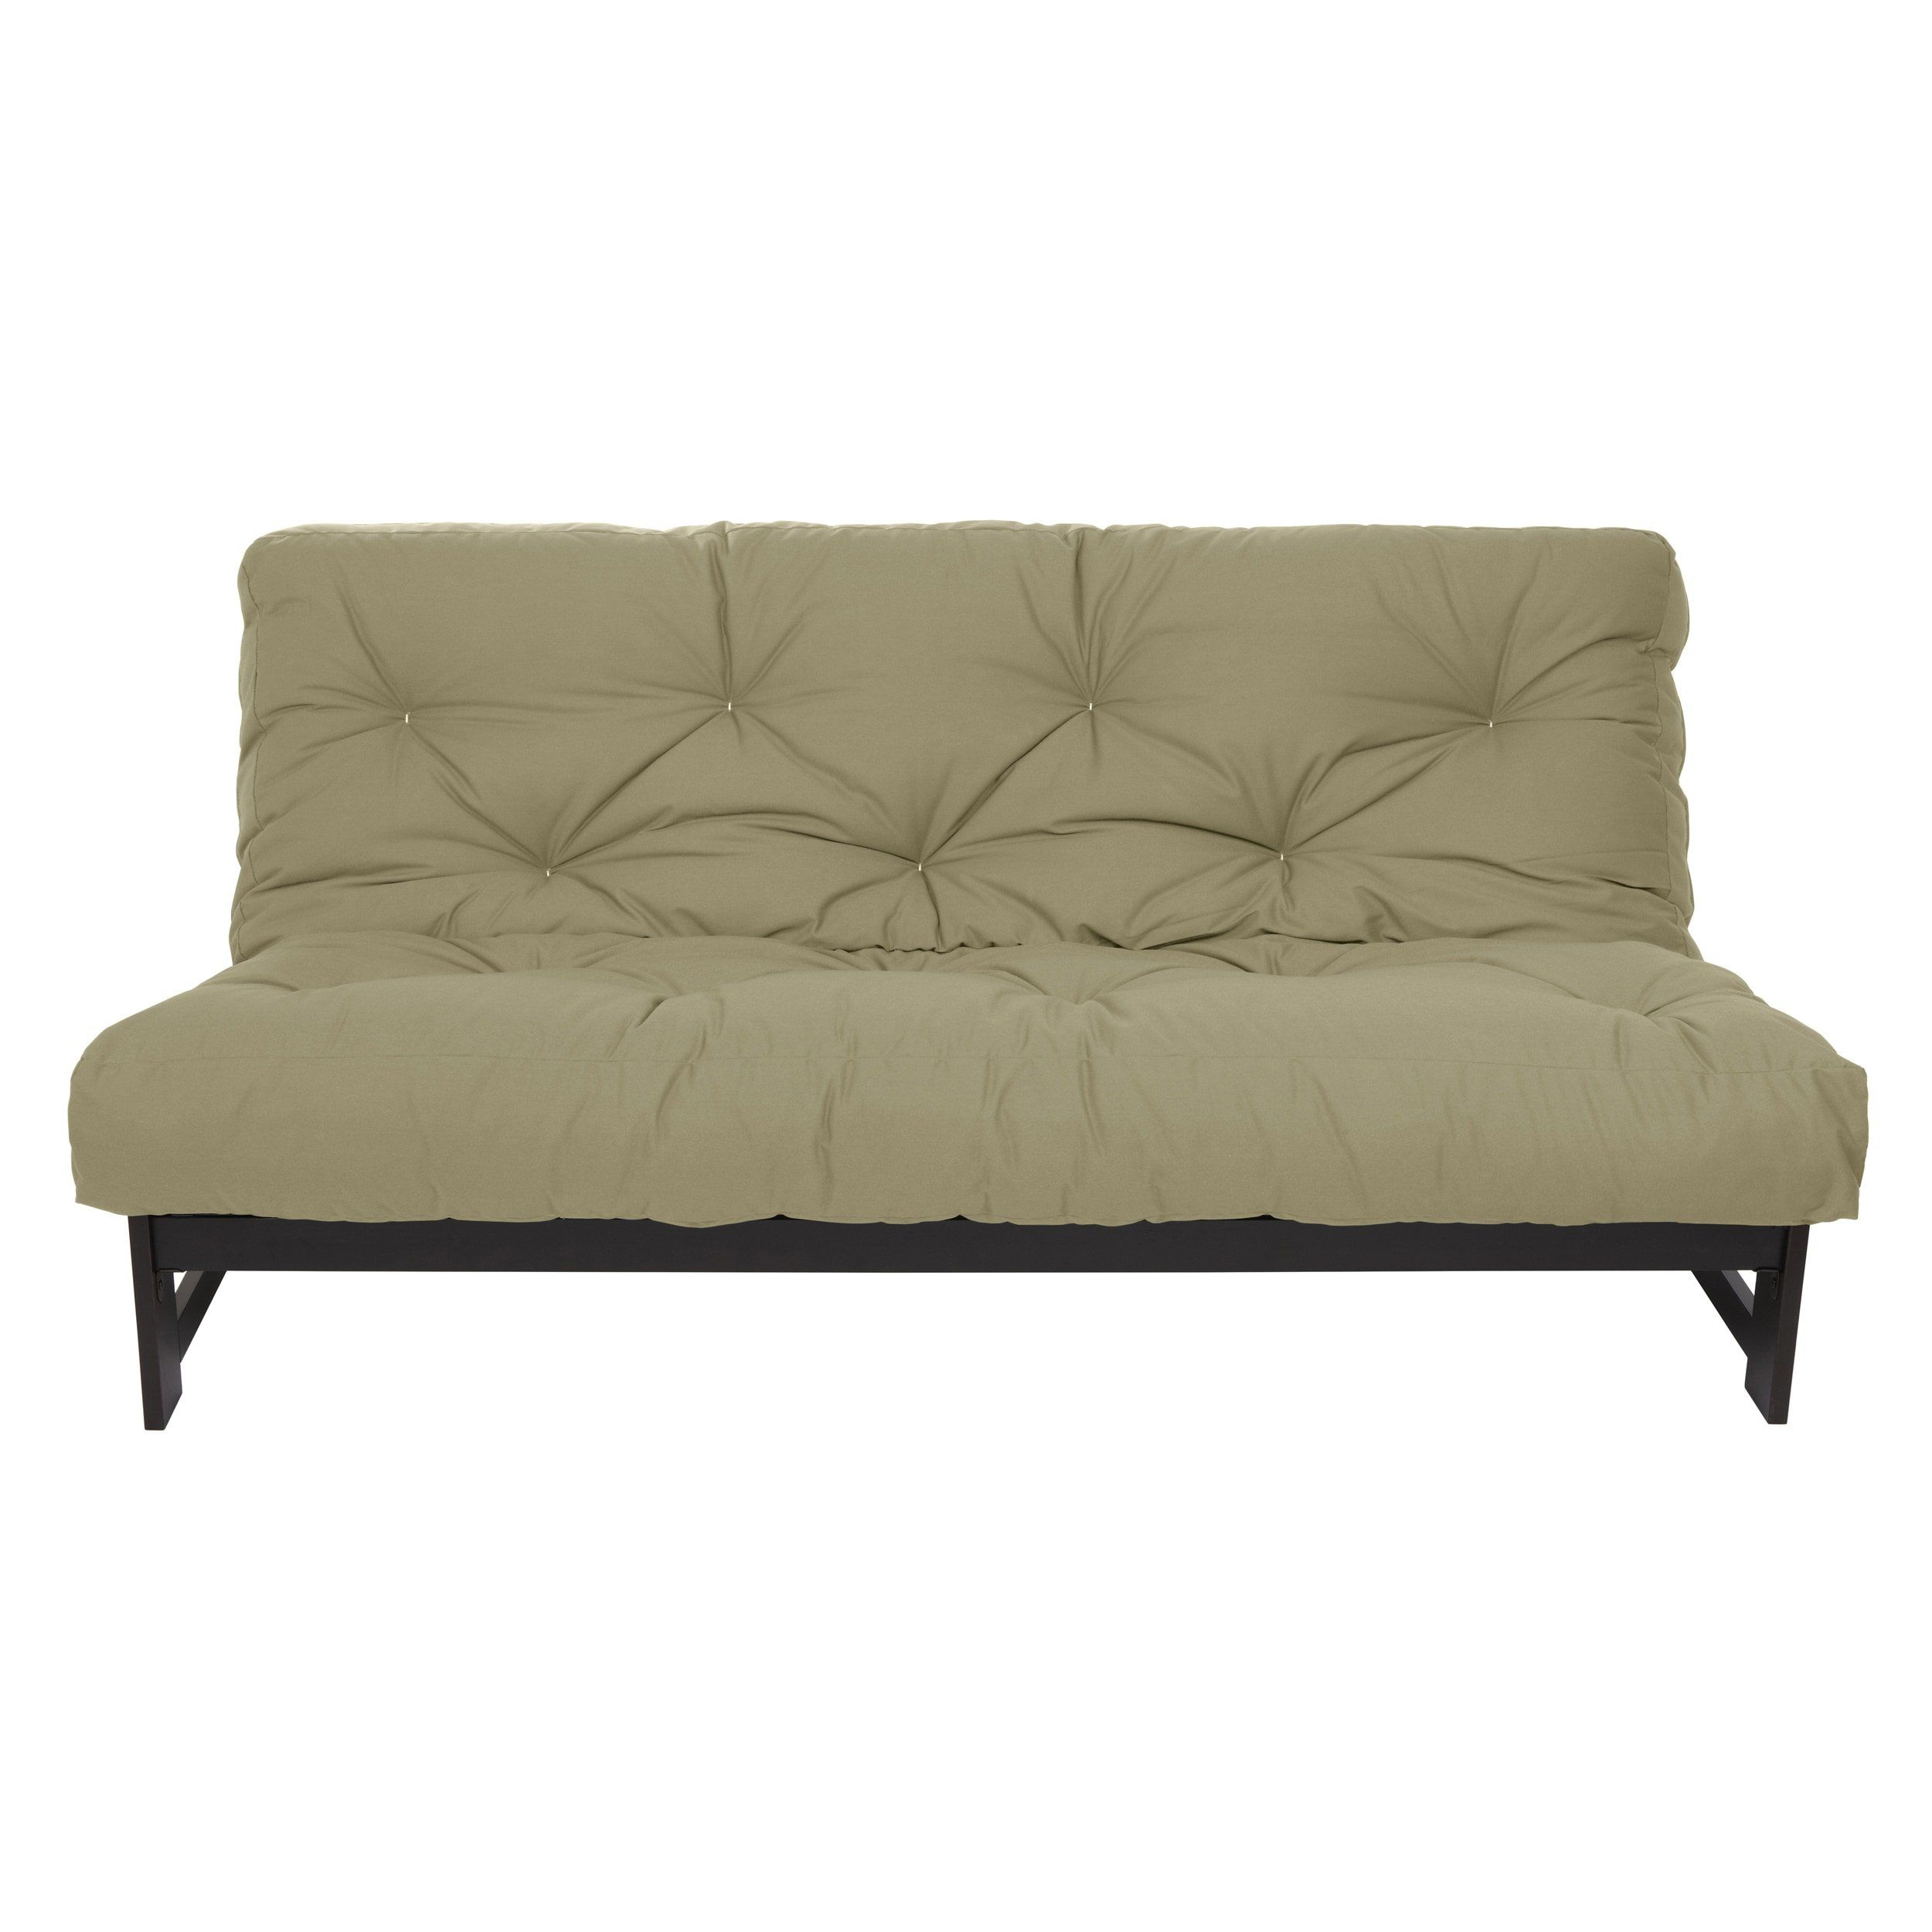 Mozaic Company Queen Size Khaki 10inch Dual Gel Futon Mattress Details Can Be Found By Clicking On The Image This Is A Futon Mattress Futon Mattress Sizes